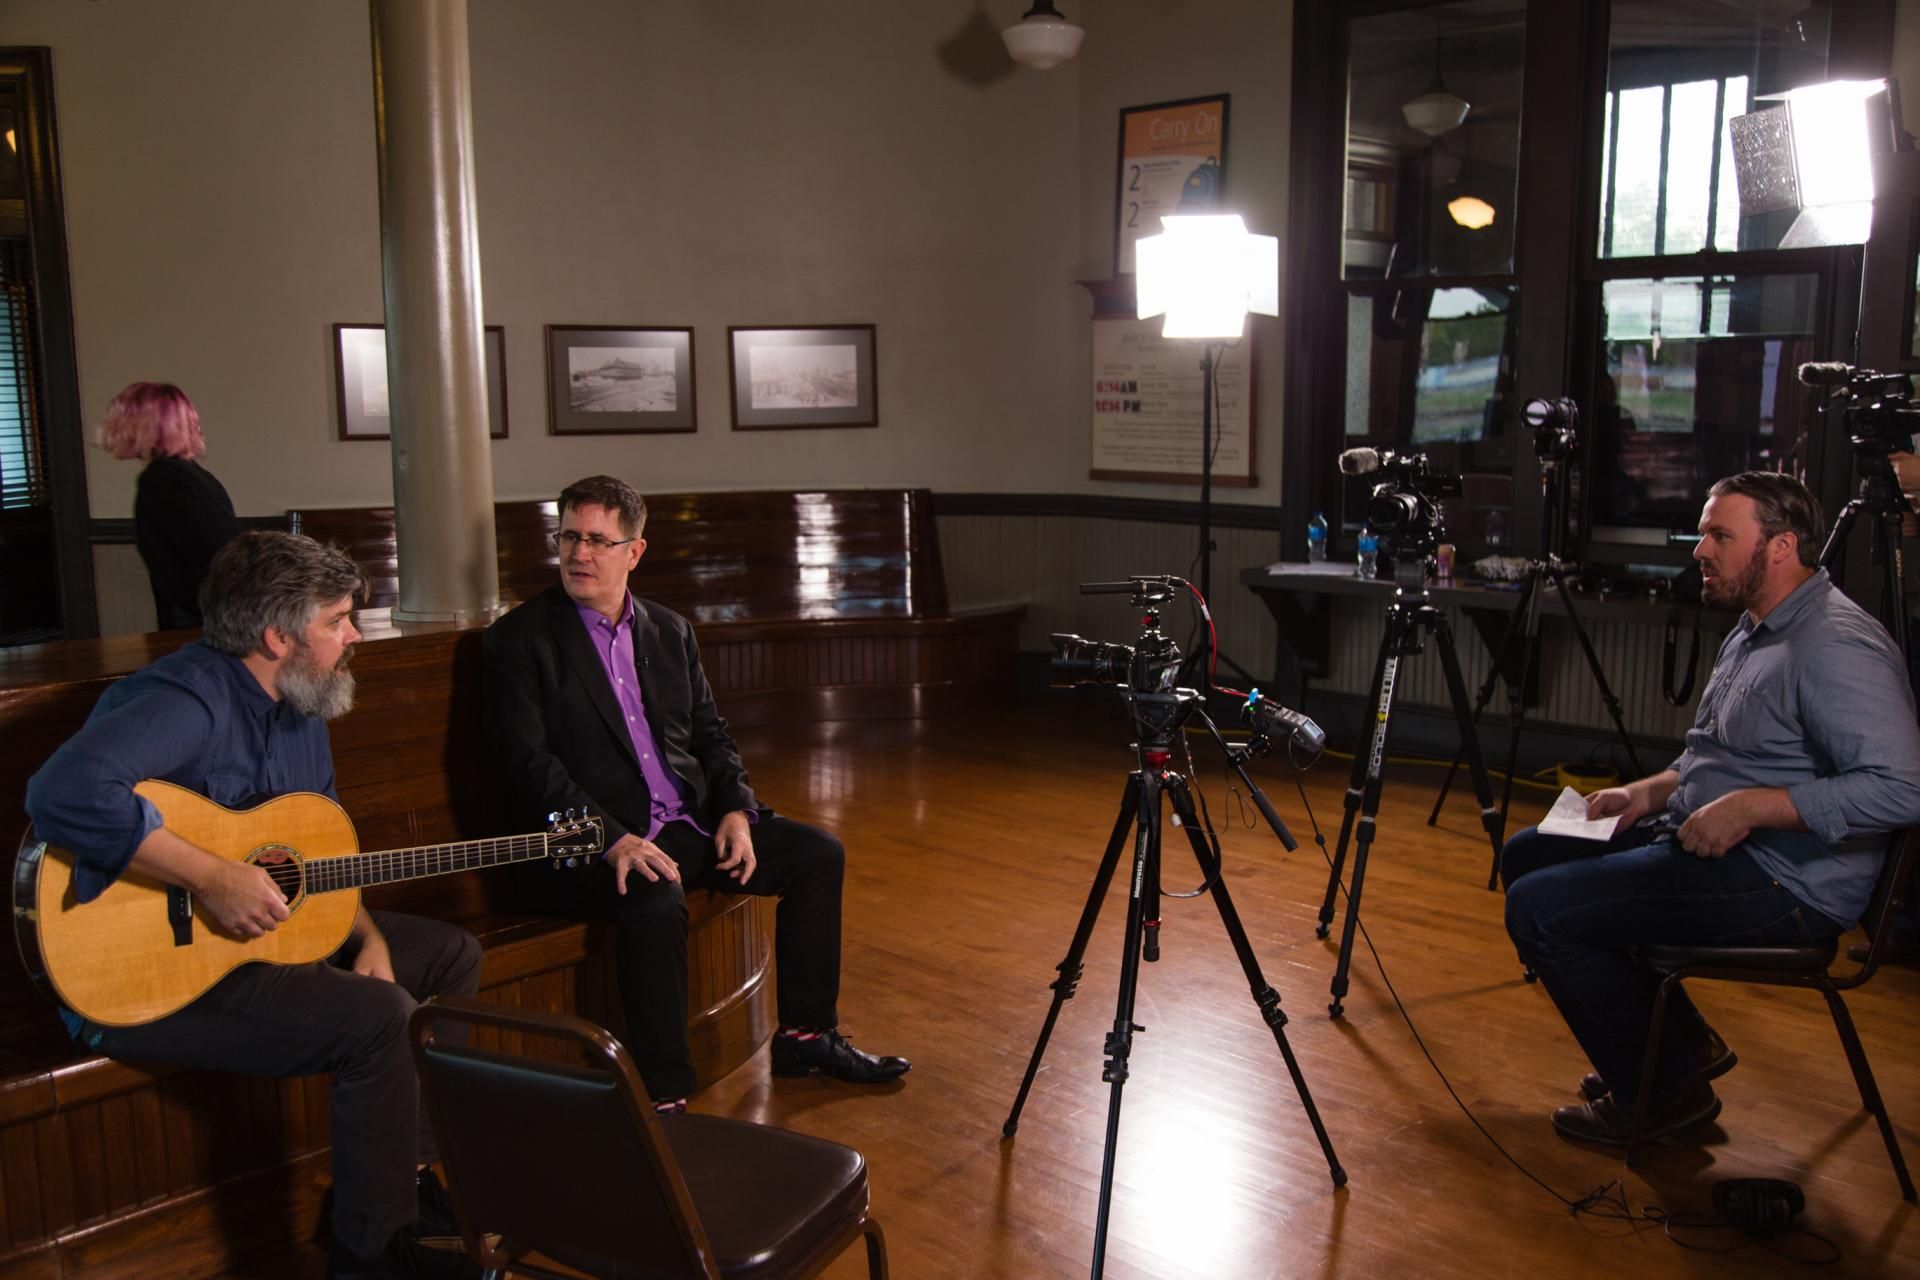 Come Hear NC team member Samuel Gerweck prepares to interview the Mountain Goats